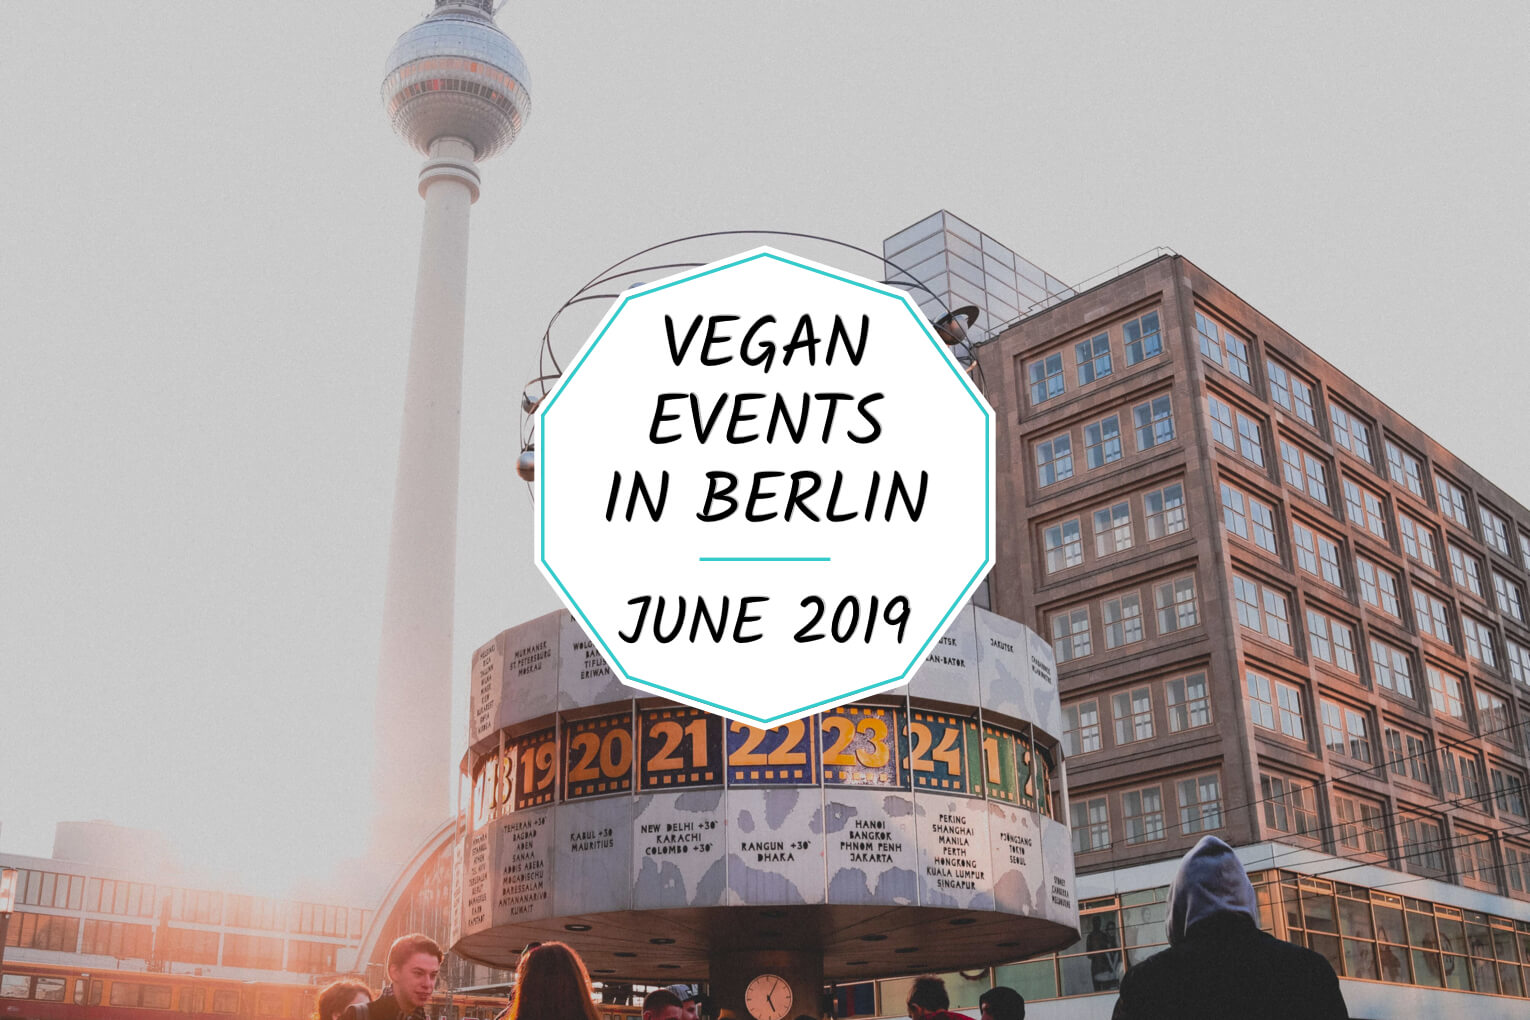 Vegan events in Berlin in June 2019